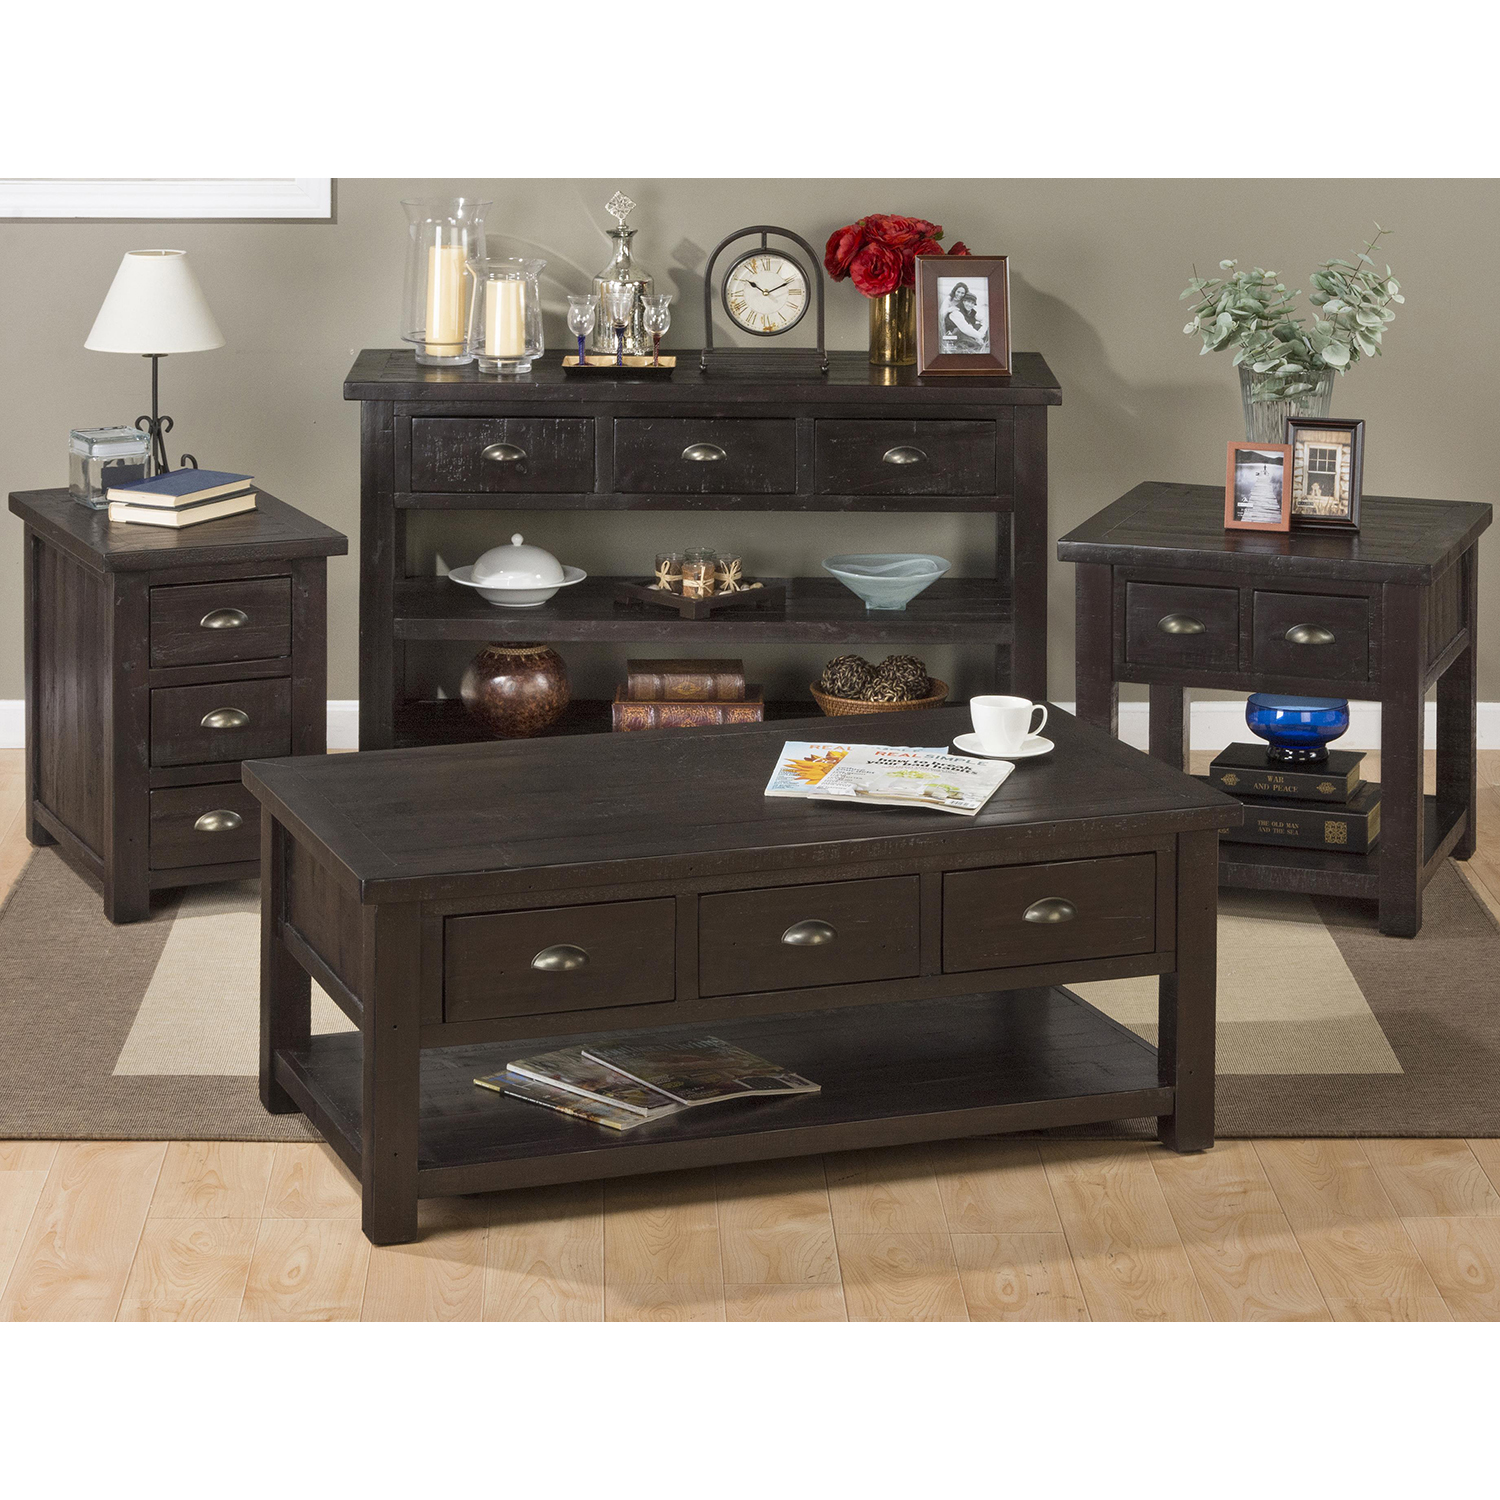 Prospect Creek End Table - JOFR-258-3